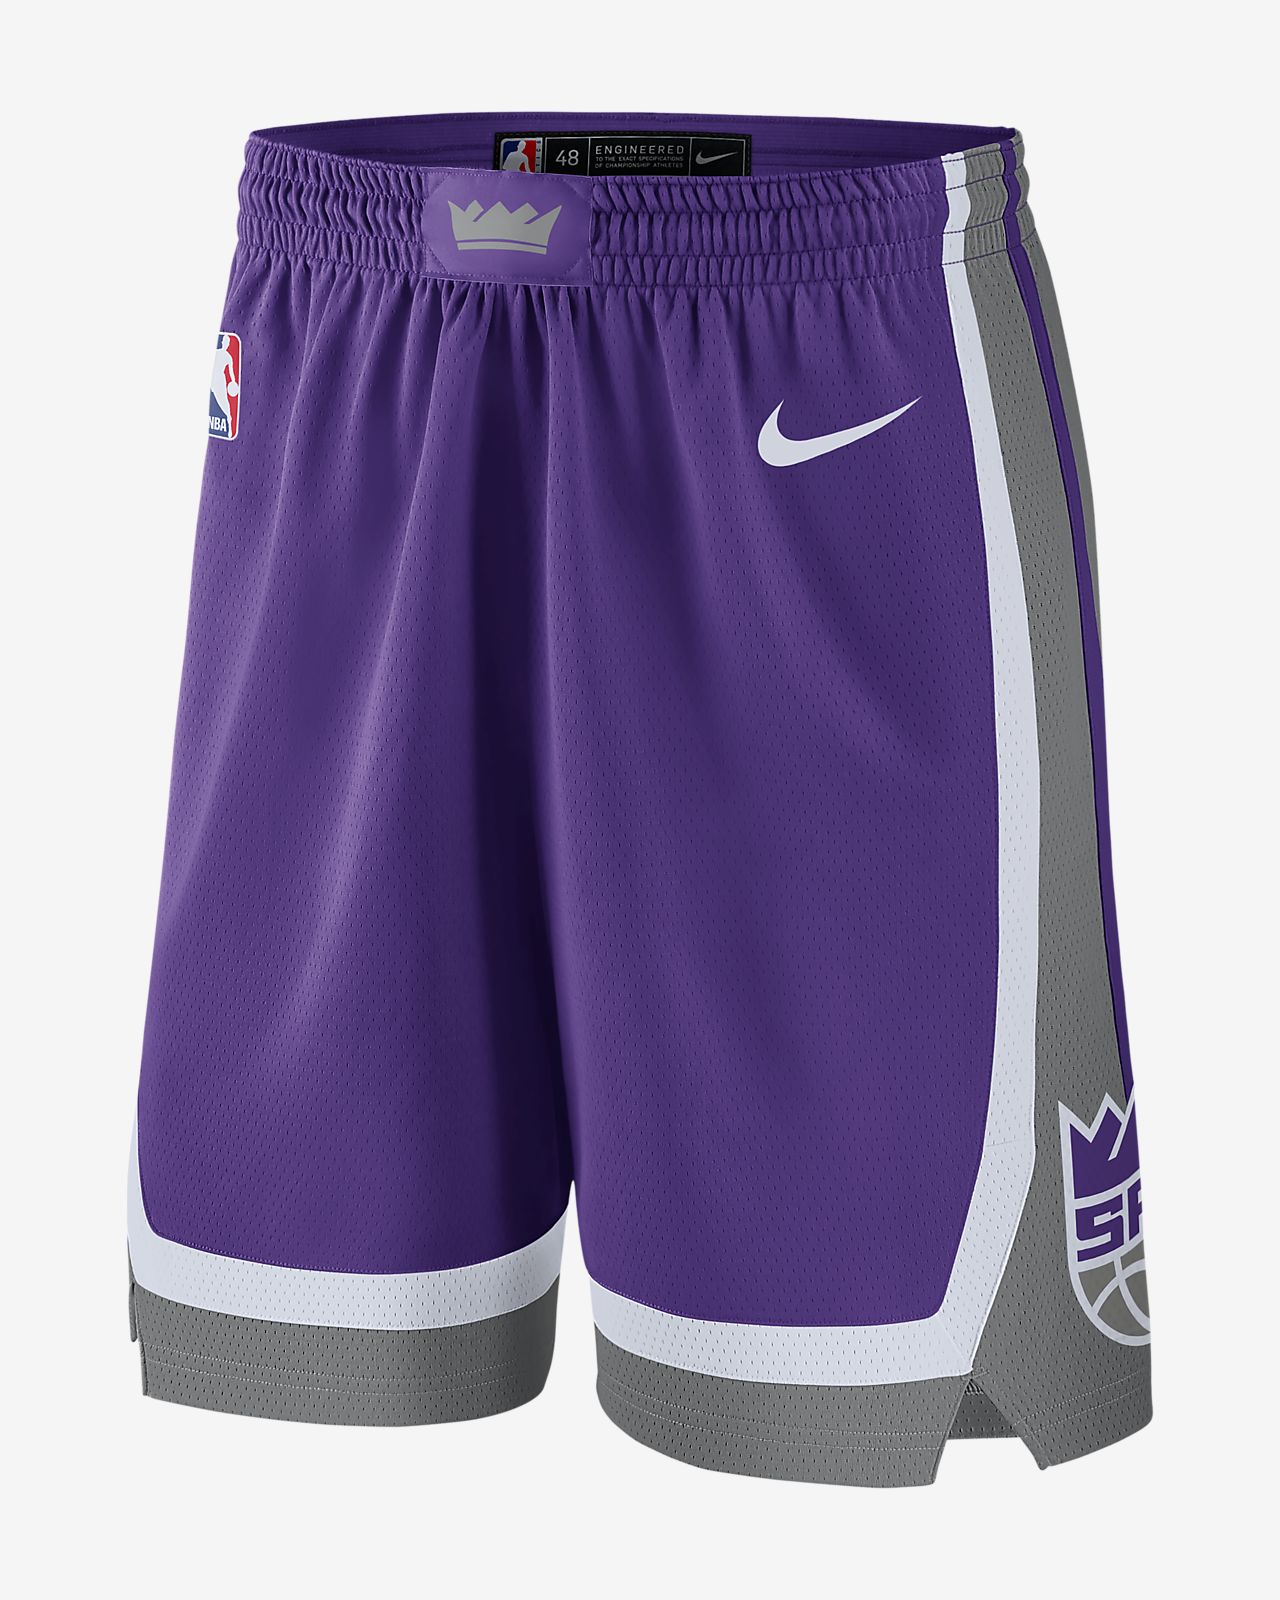 Sacramento Kings Icon Edition Swingman Nike NBA-Shorts für Herren